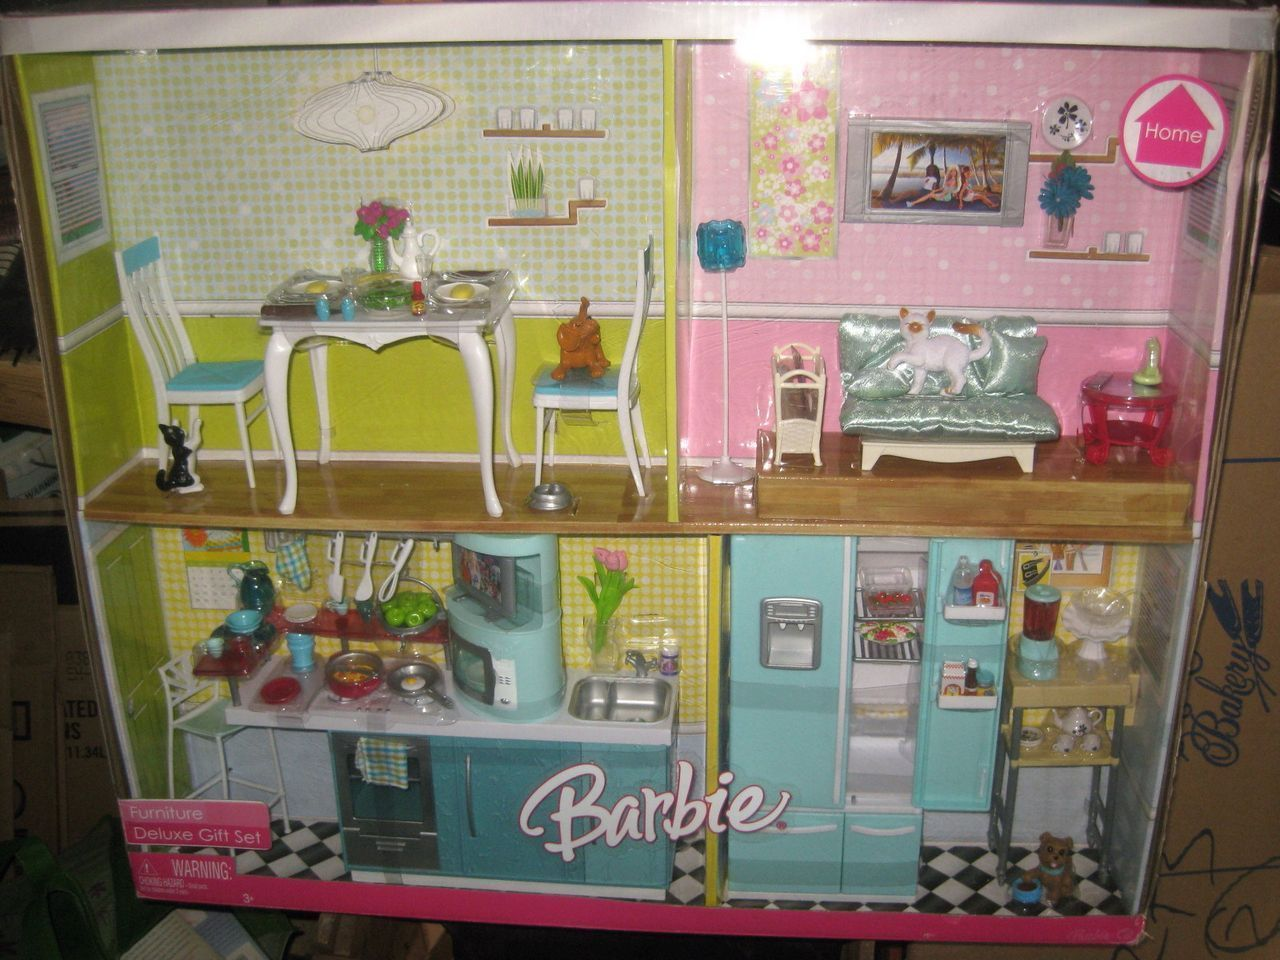 barbie mattel home furniture deluxe gift set kitchen